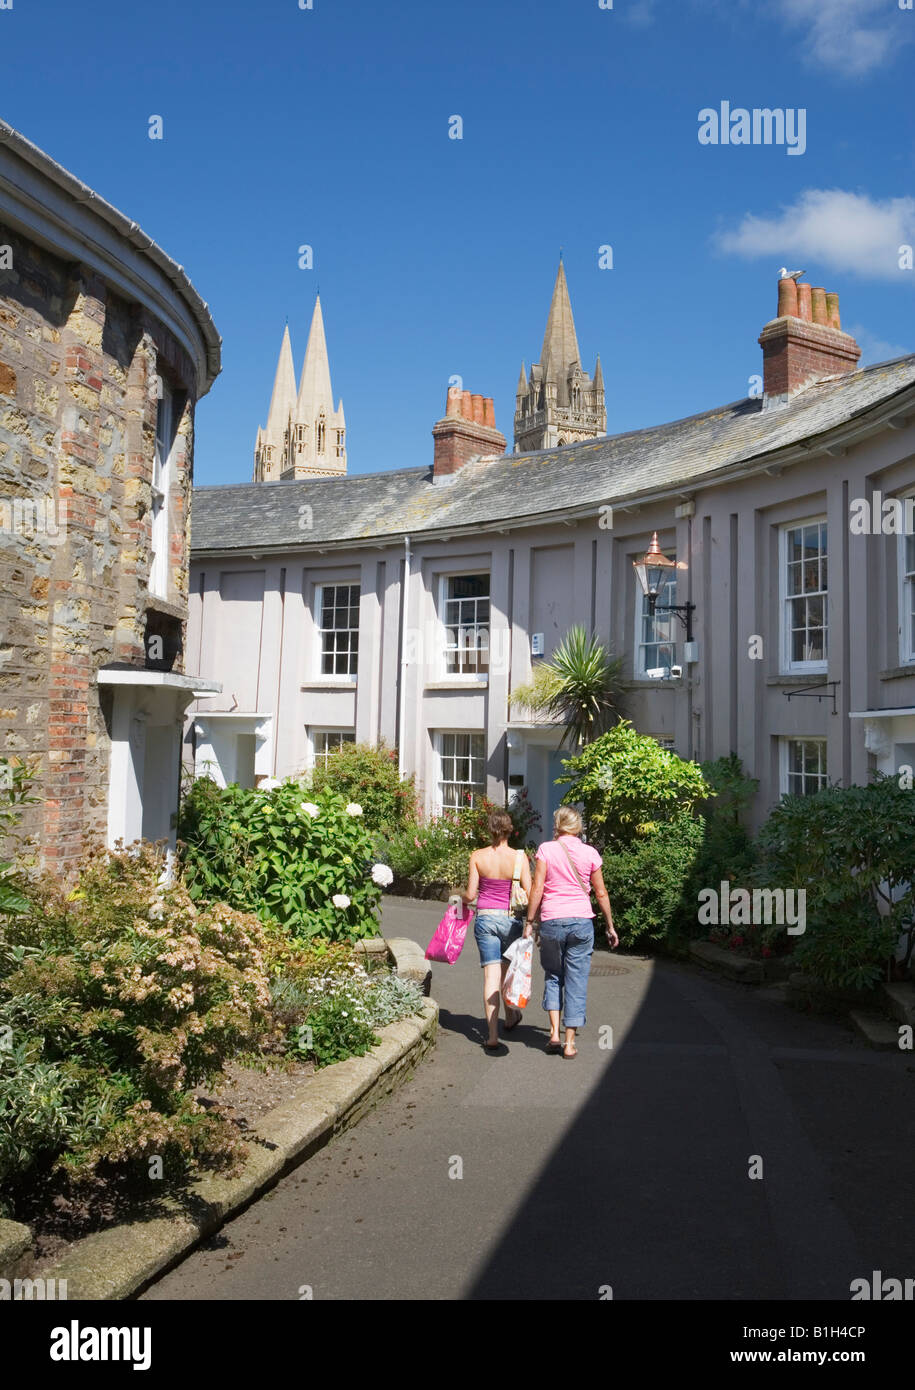 Tourists in Truro, Cornwall, England U.K. - Stock Image